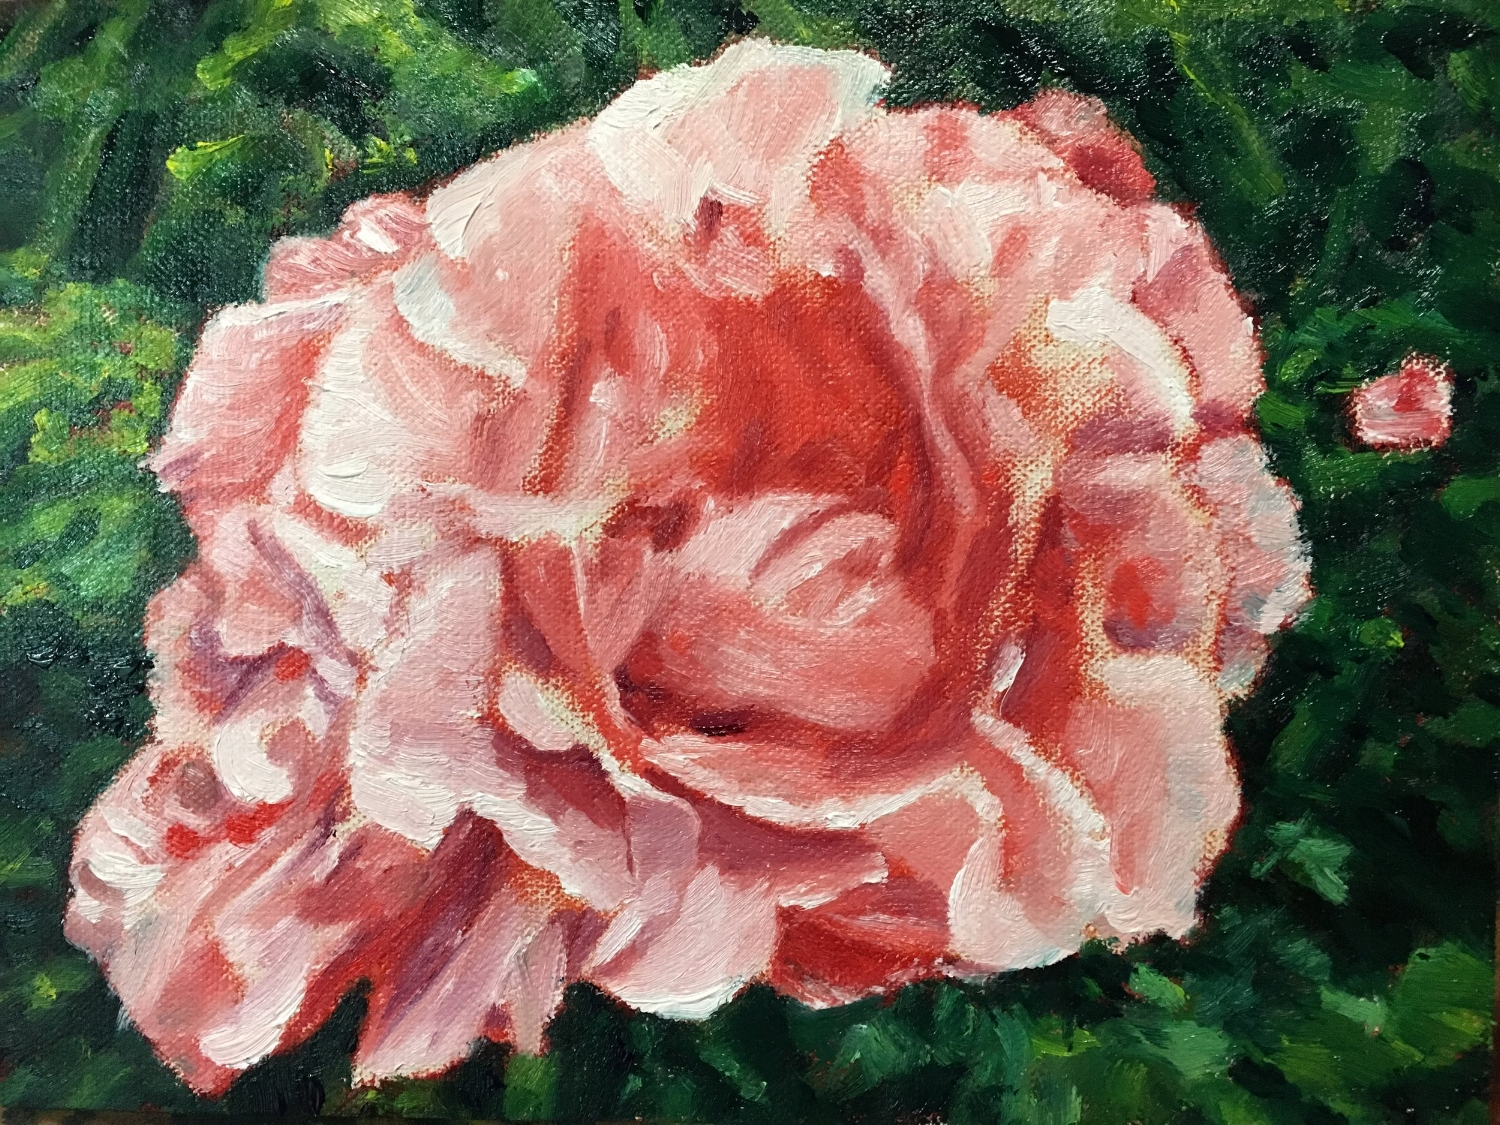 Quick Study of Rose at Musee Rodin Garden (07 April 2018)